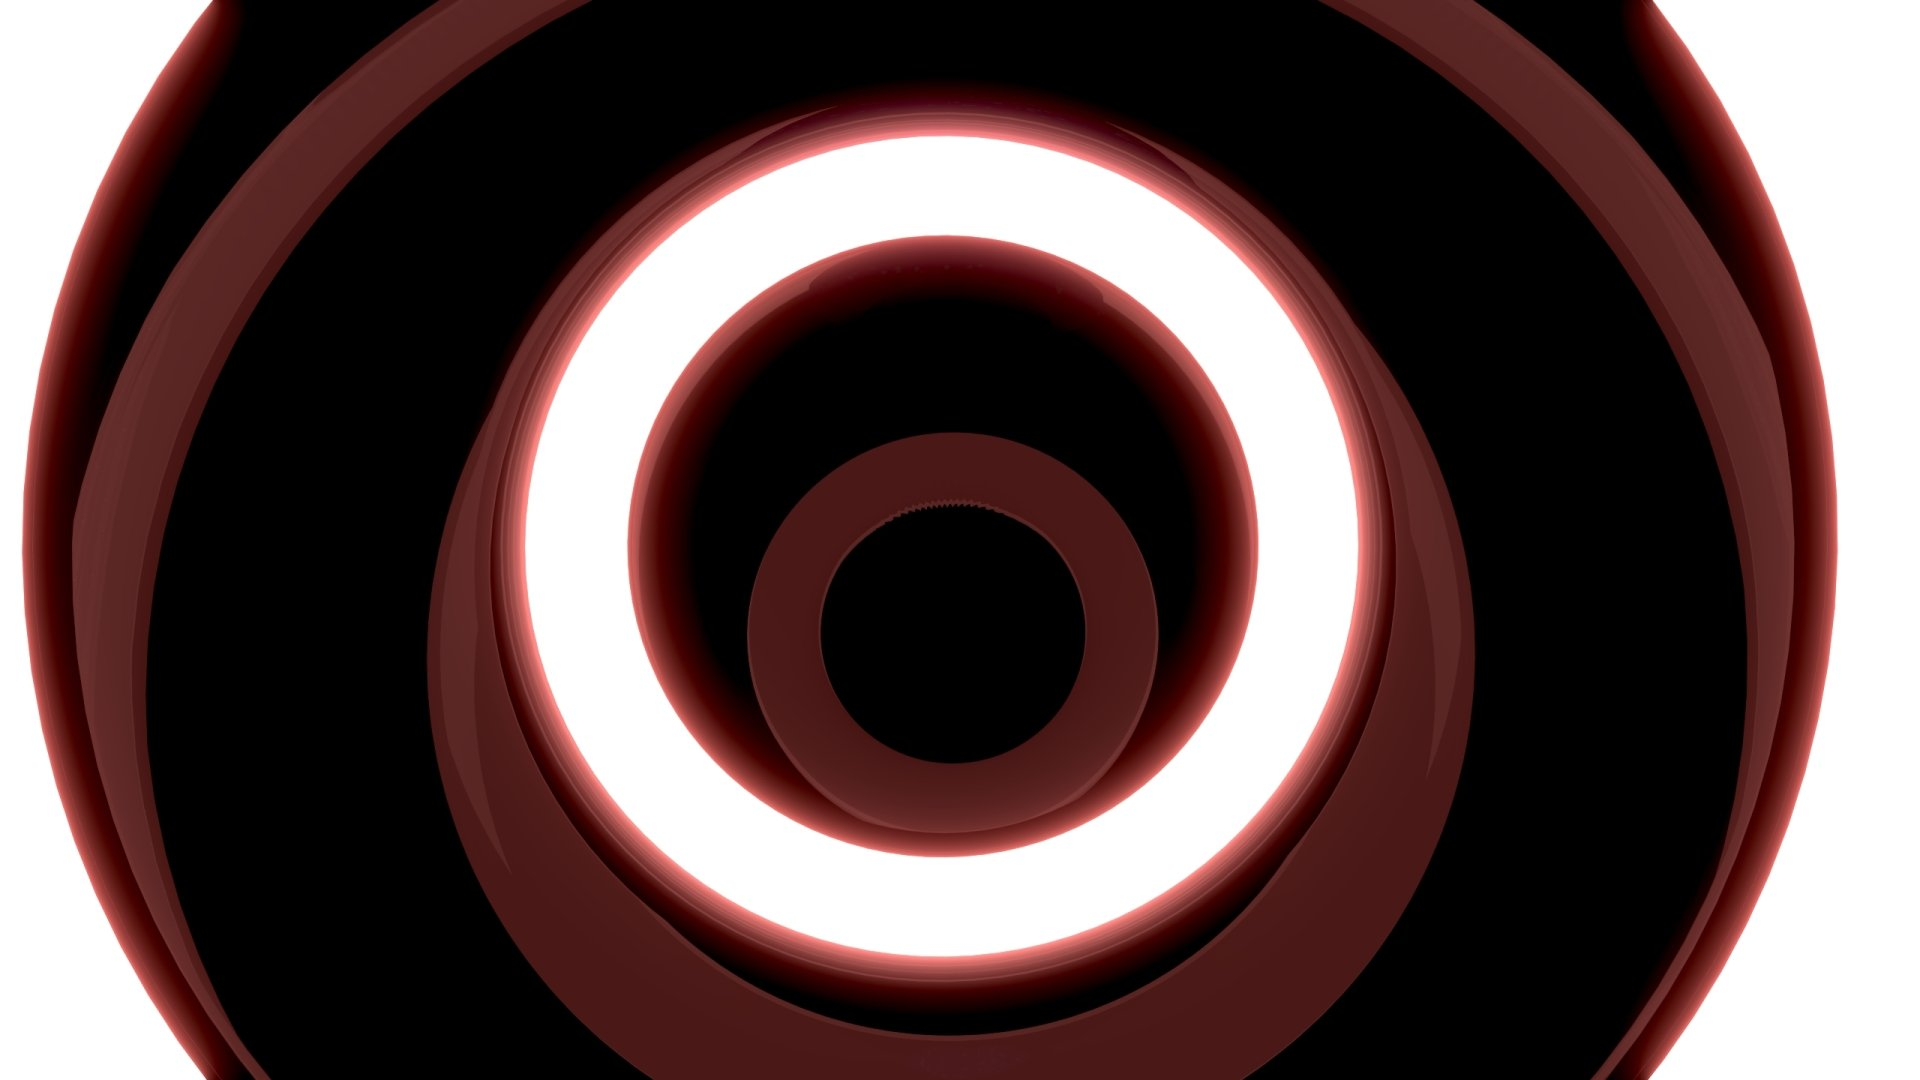 Abstract - Digital Art  3D CGI Red Abstract Black Artistic Wallpaper